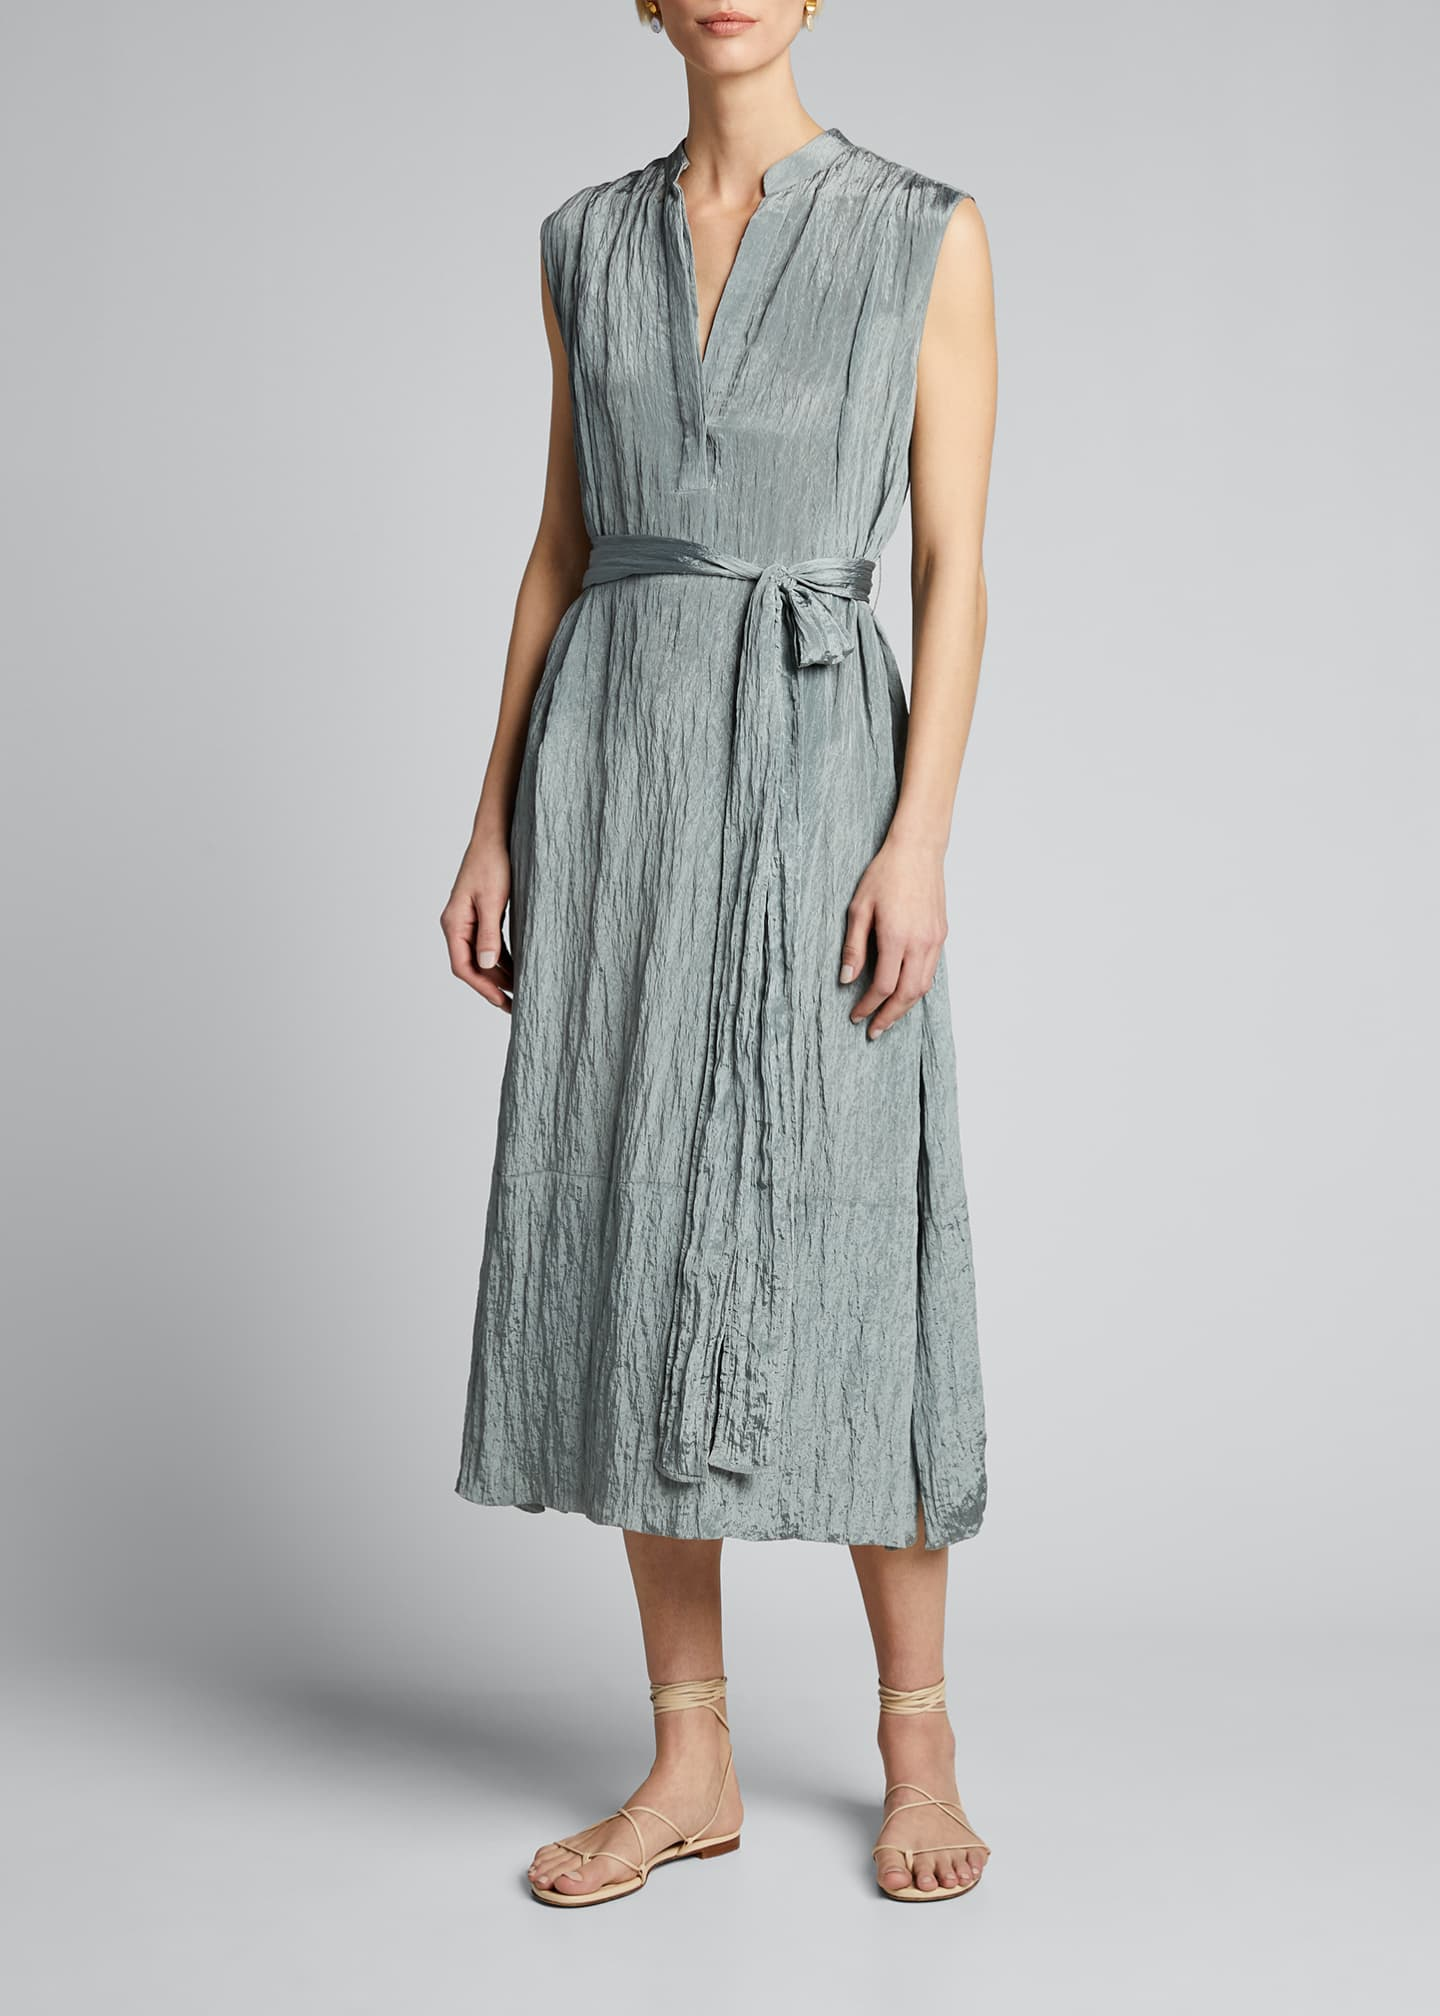 Image 3 of 4: Sleeveless Textured Popover Dress